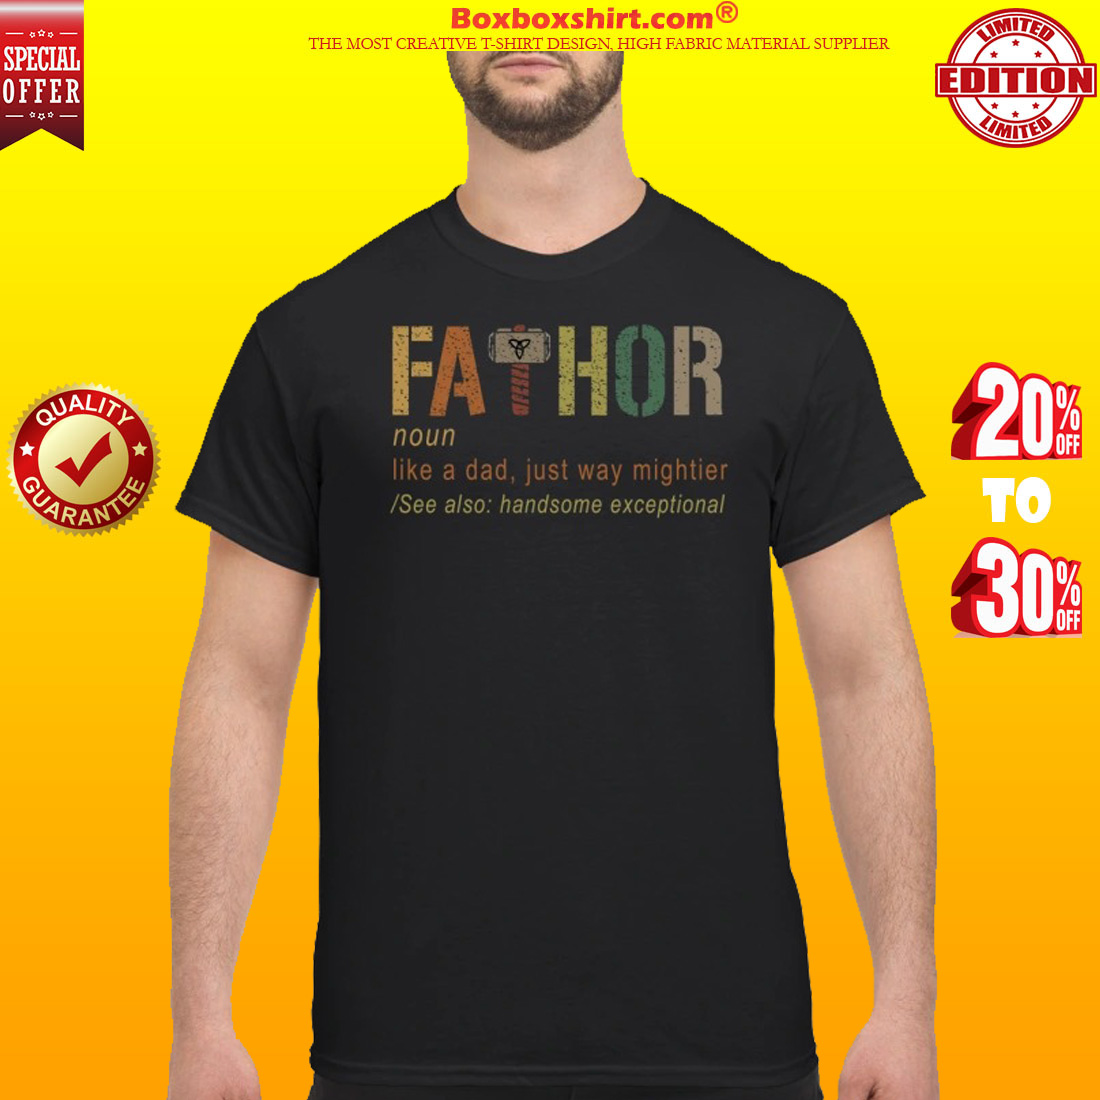 Fathor like a dad just way mightier classic shirt